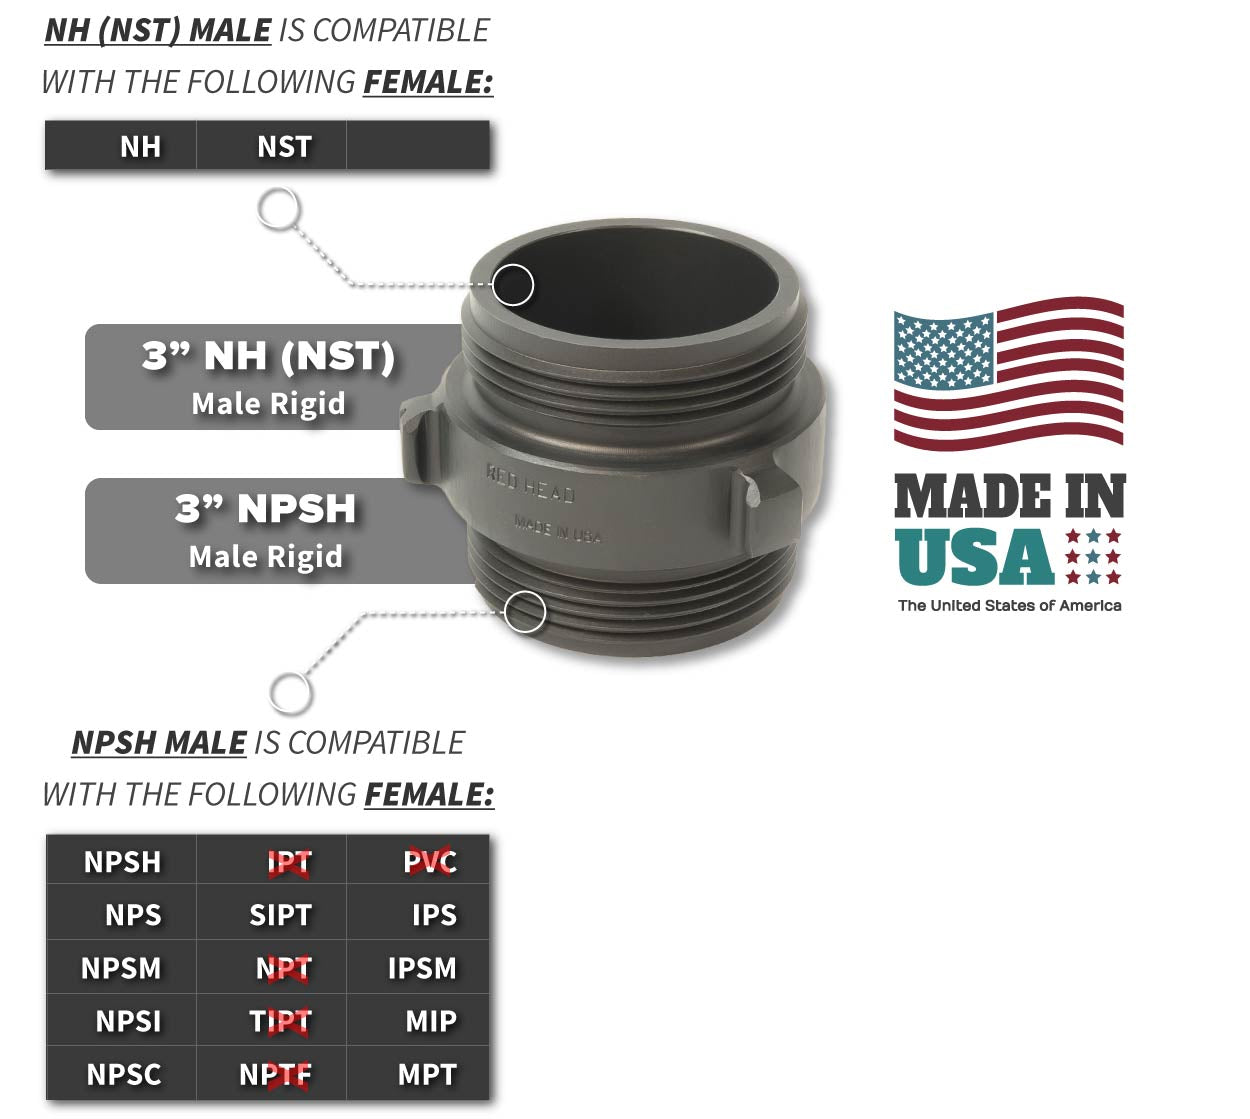 3 Inch NH-NST Male x 3 Inch NPSH Male Compatibility Thread Chart